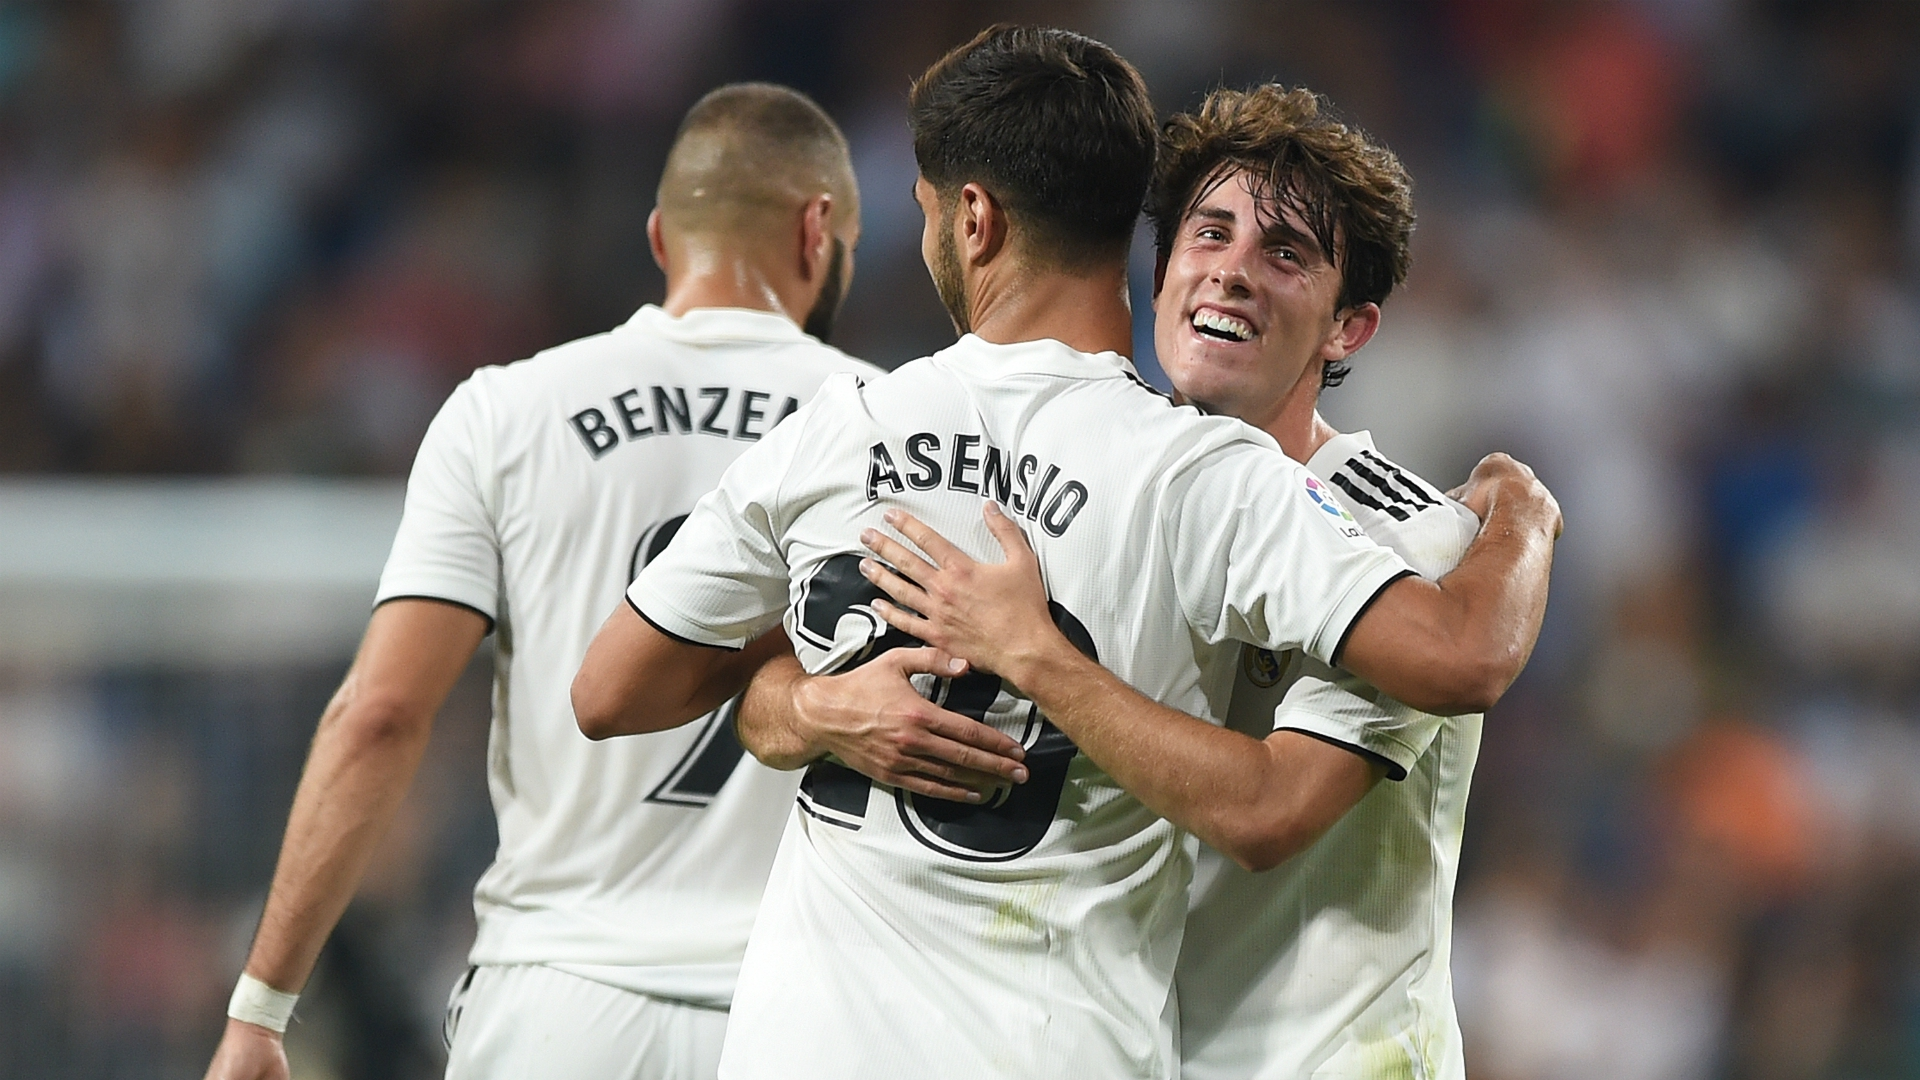 Real Madrid become first team to reach 4,500 points in LaLiga